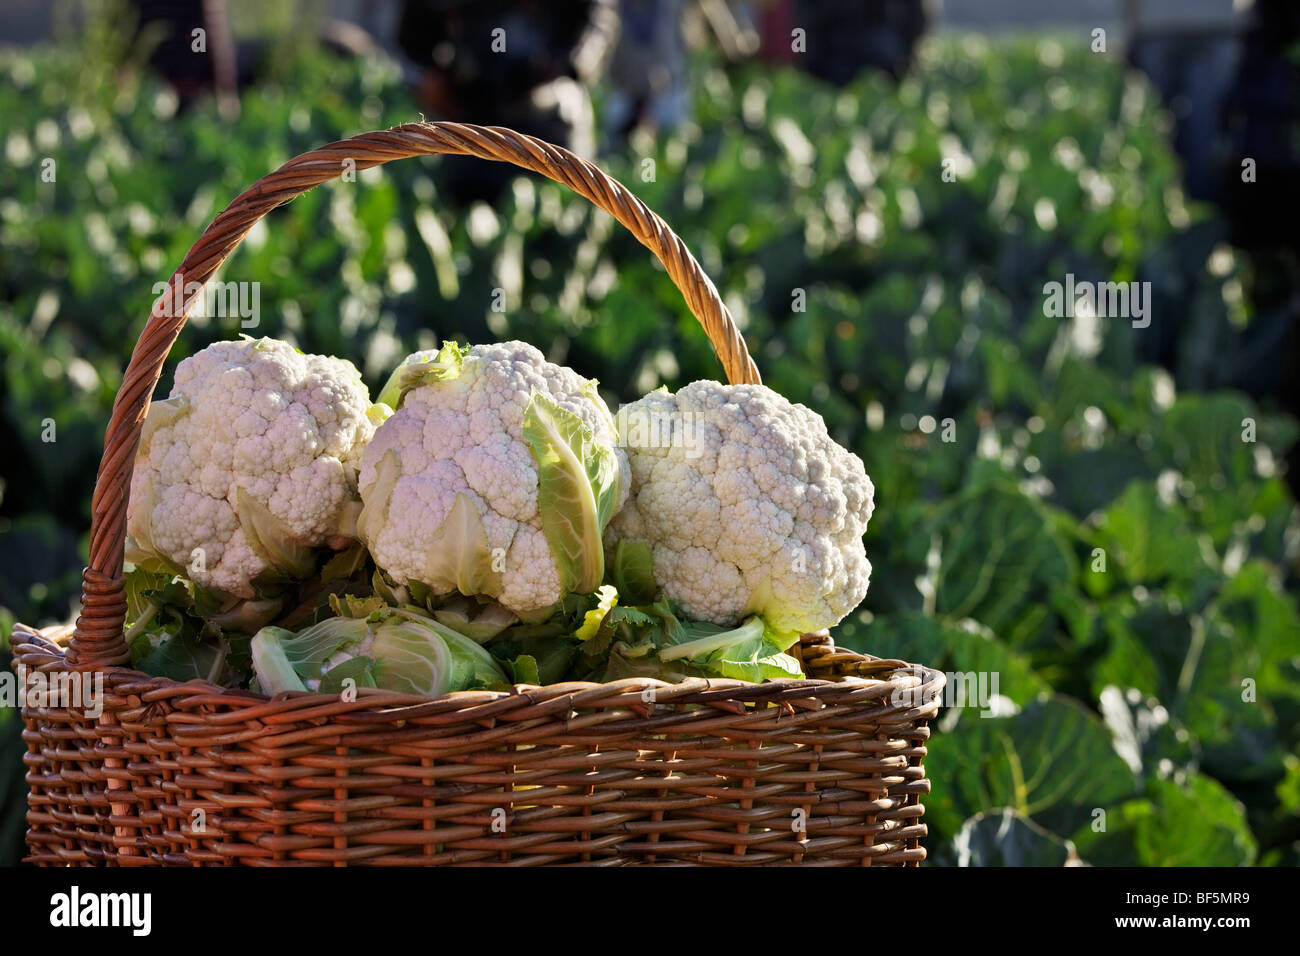 Cauliflower in basket. Fresh cauliflower being harvested from fields and awaiting shipment. South Africa Stock Photo